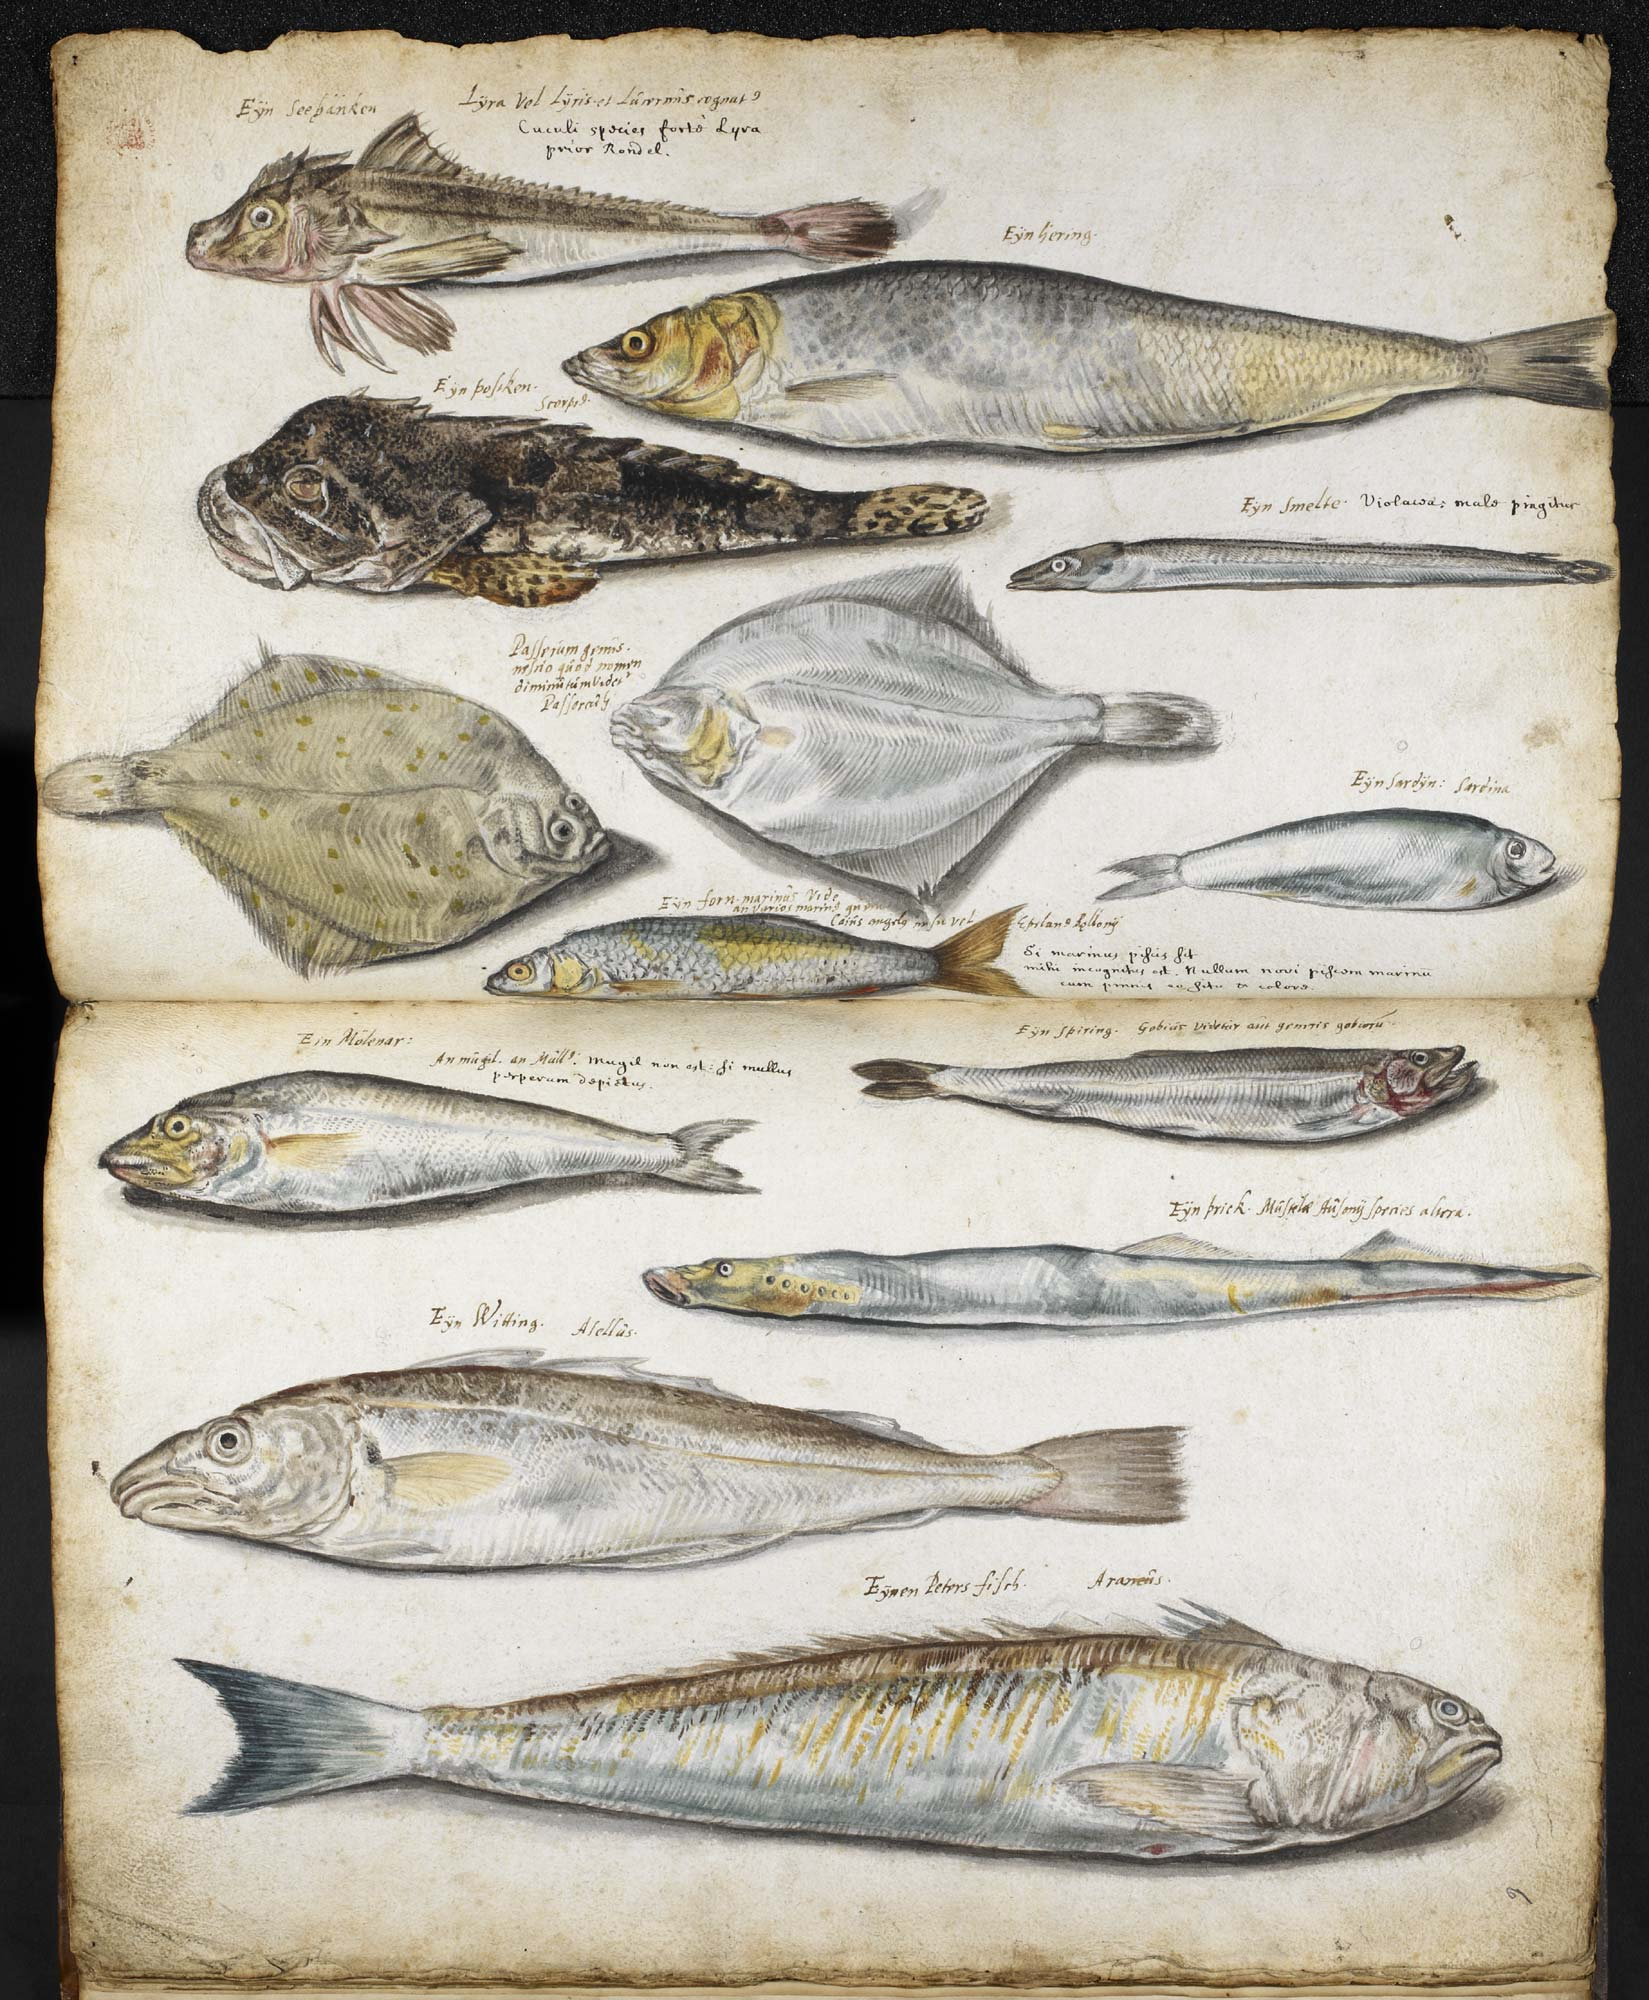 Illustration from John Ray's Book of Fishes, f.5v-6